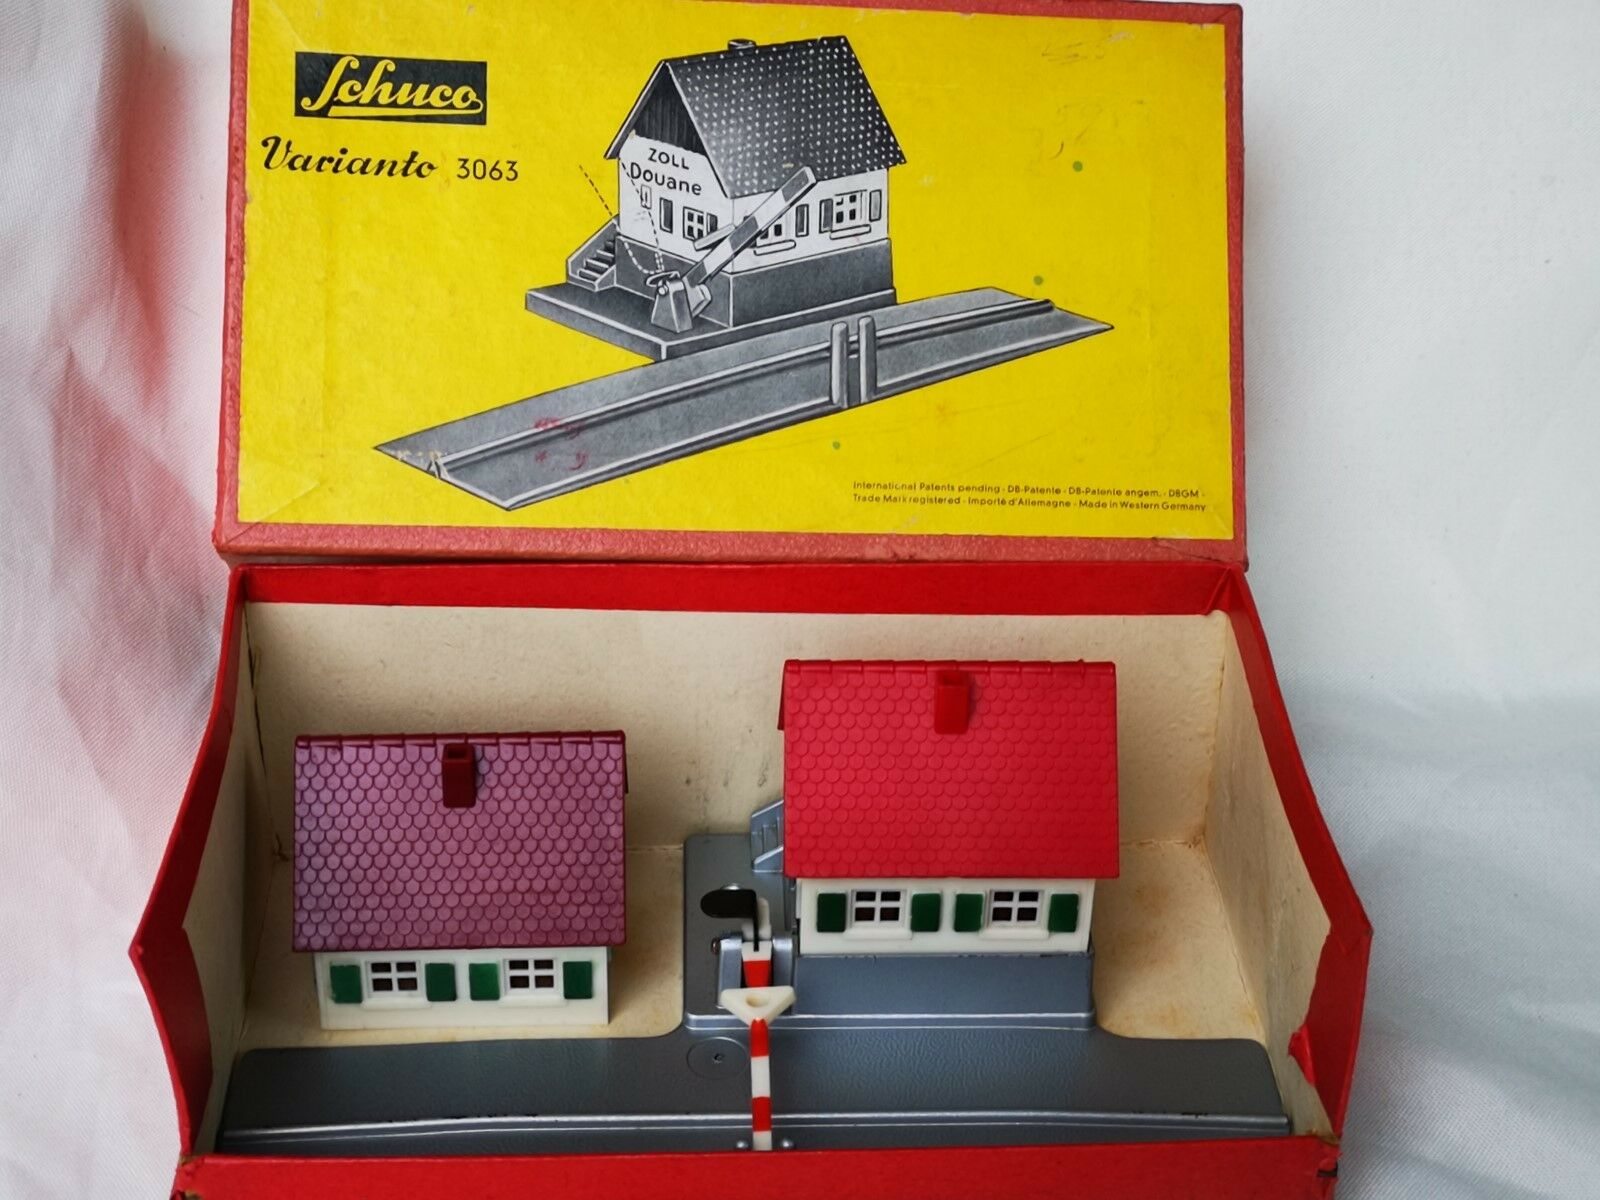 Schuco Varianto 3063 Zollhaus   Toll House Boxed